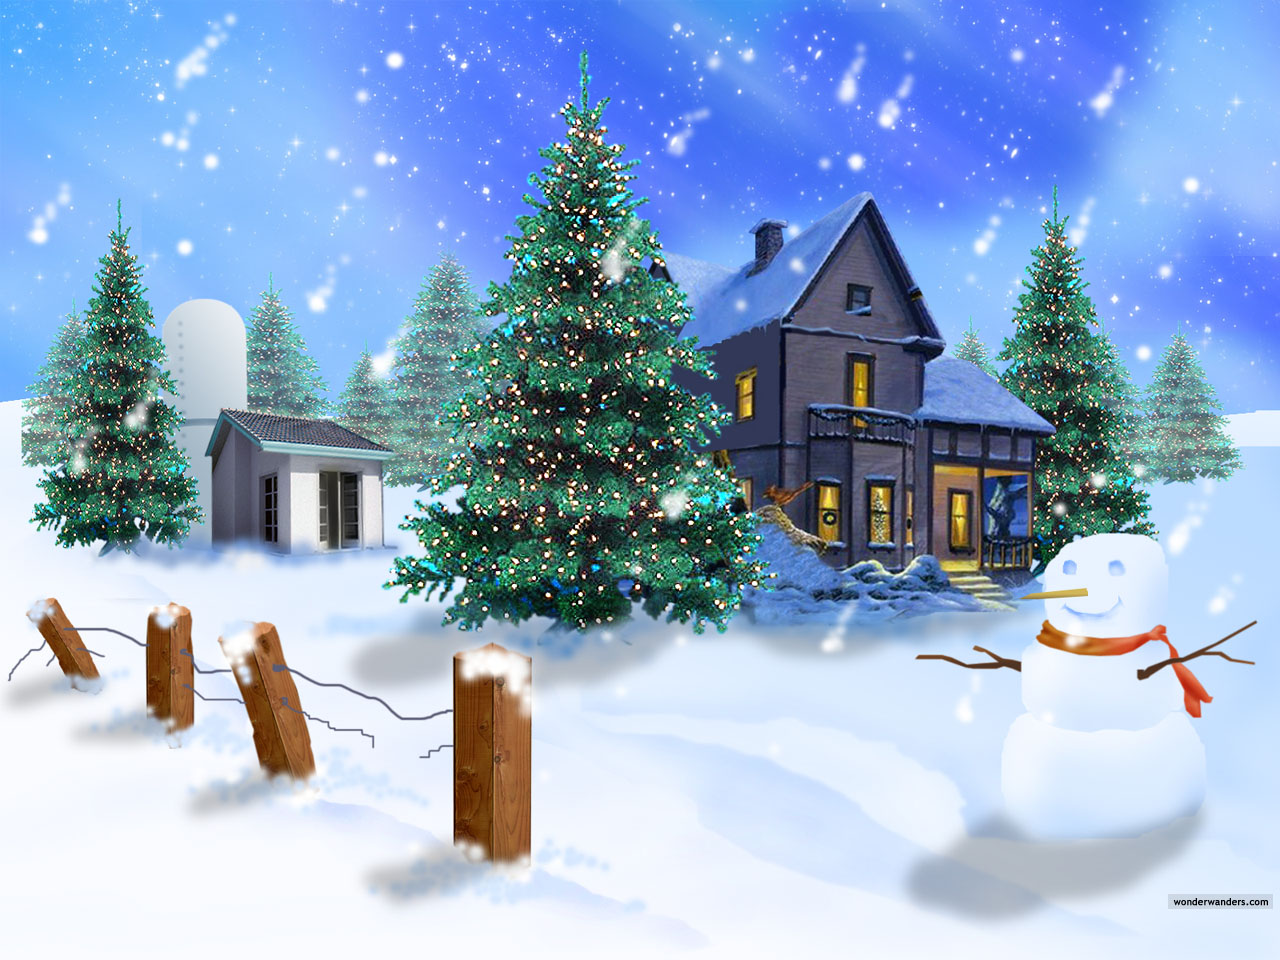 Cute Winter Scene Christmas Wallpaper 1280x960